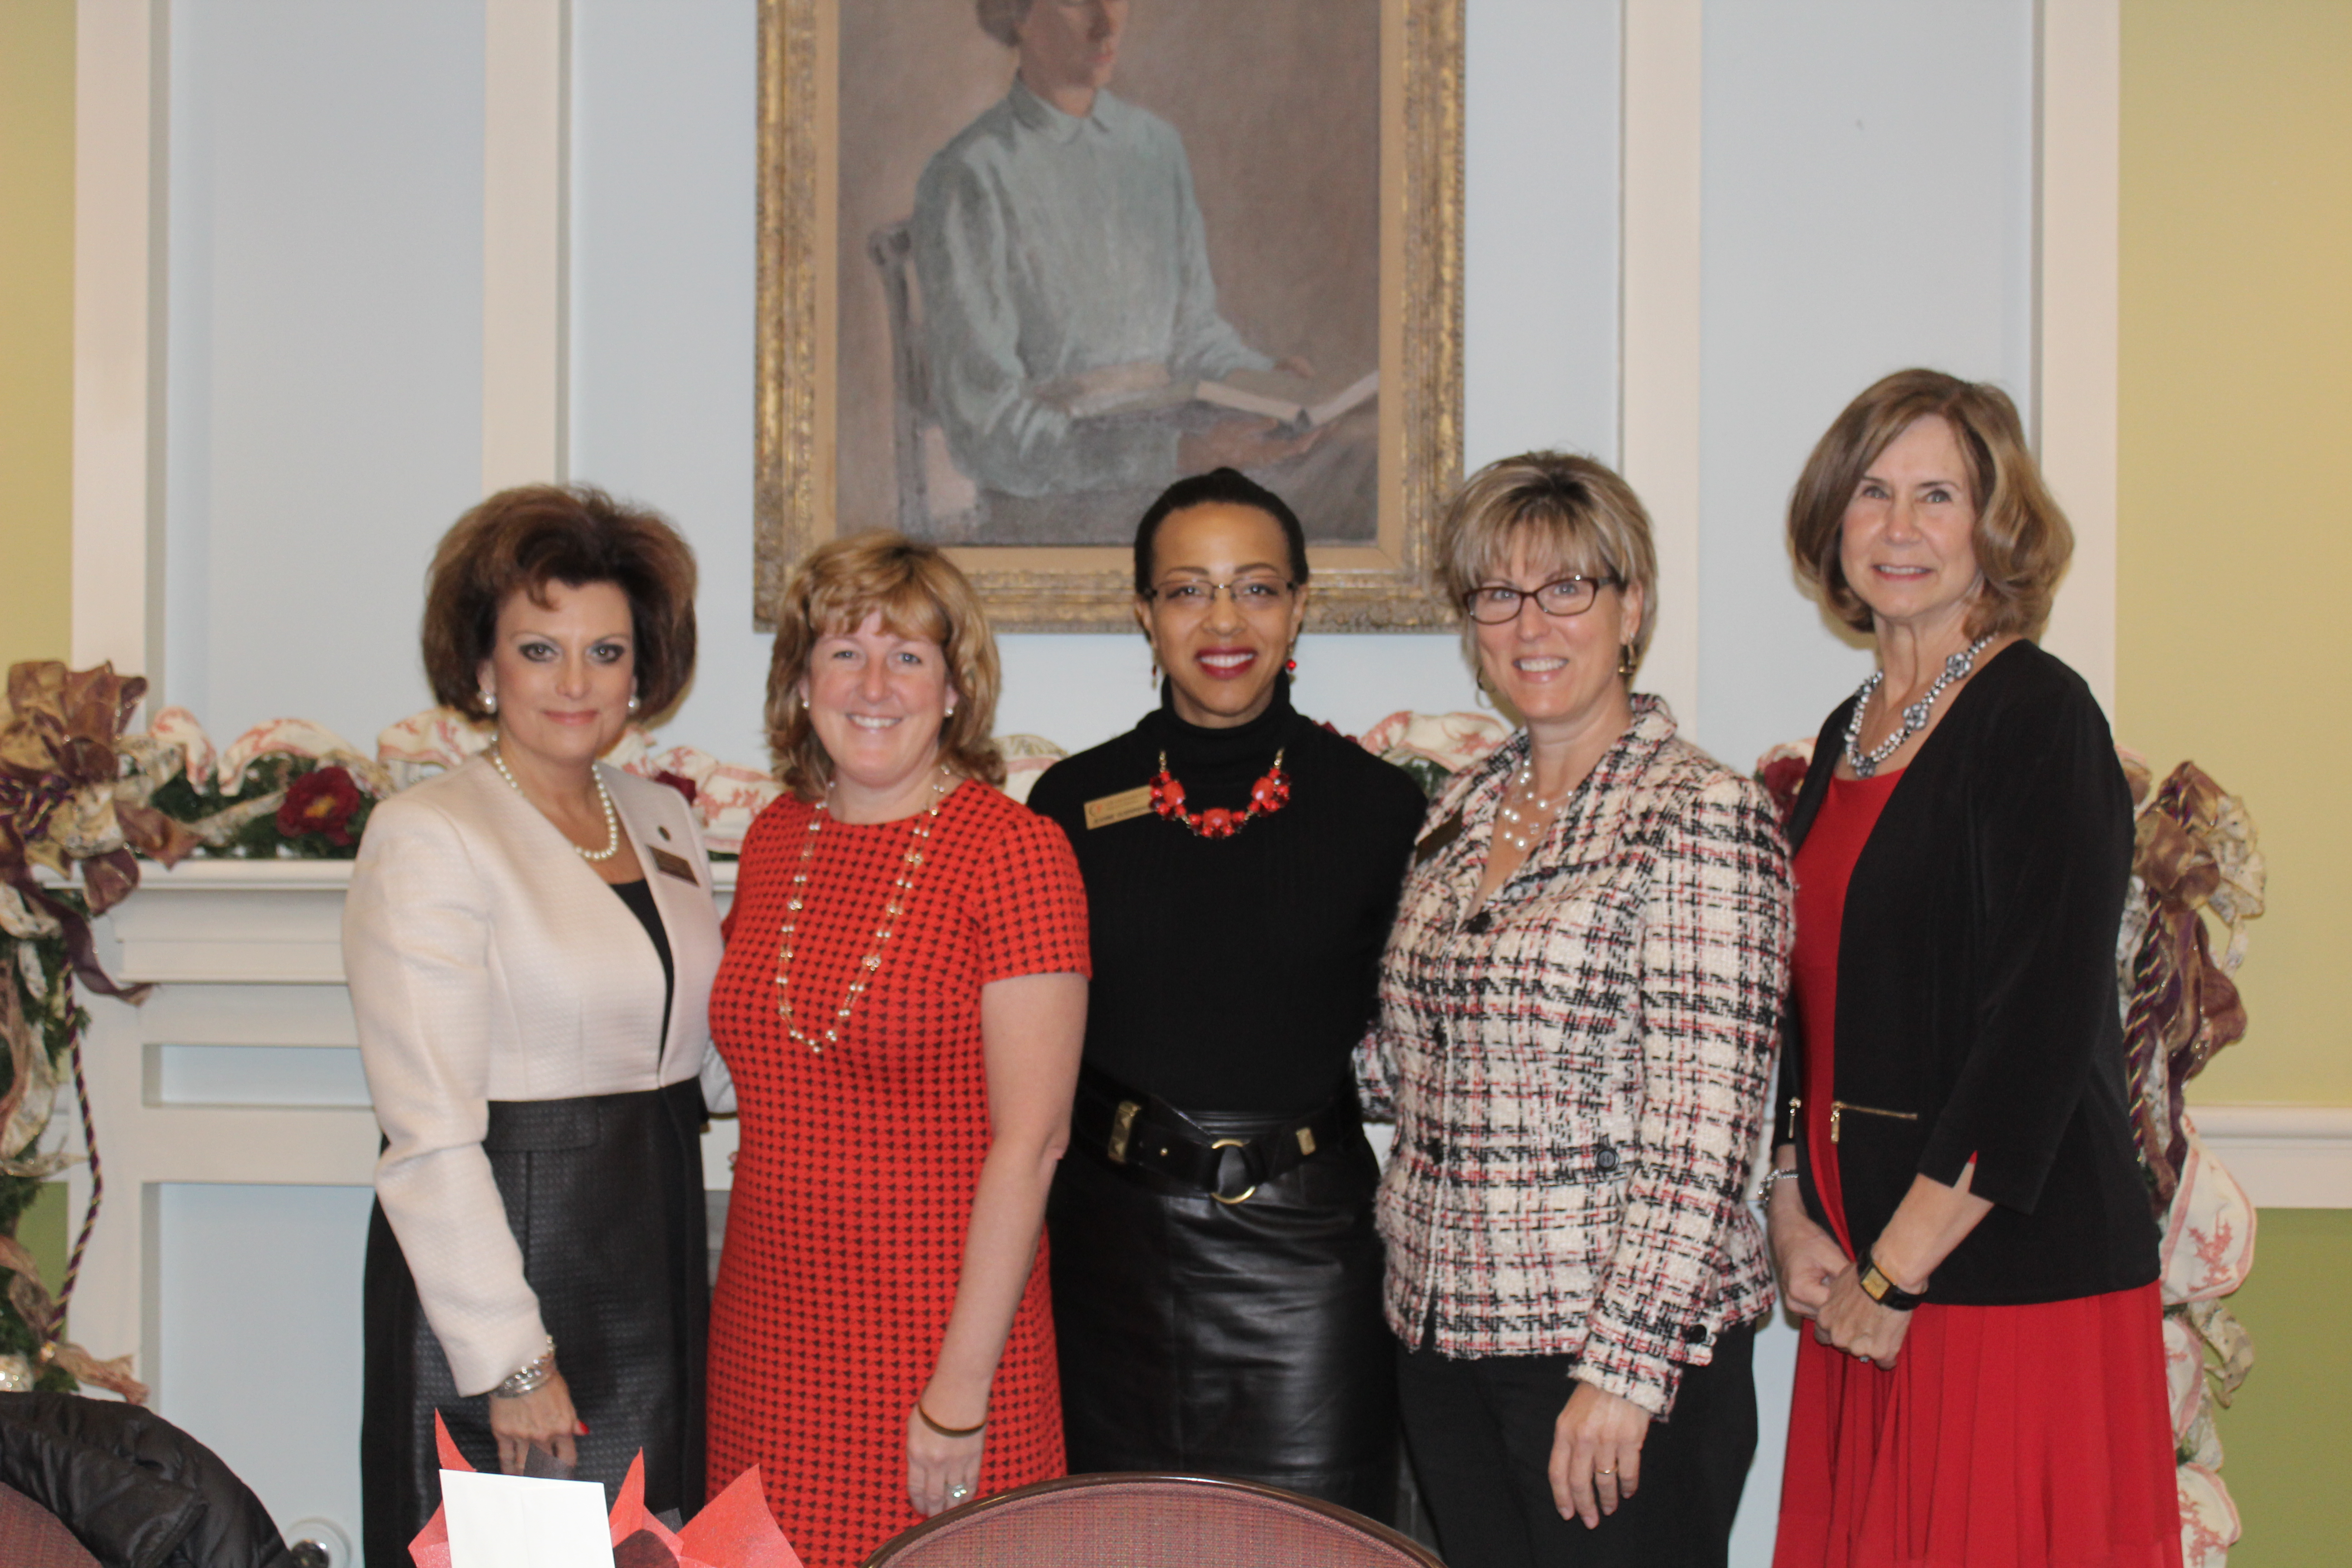 Chair Guerrero, Communications Chair Sherry Duffy, with Panelists:Dr. Ann Larson, Dr. Susan Duncan, and Dr. Marcia Hern